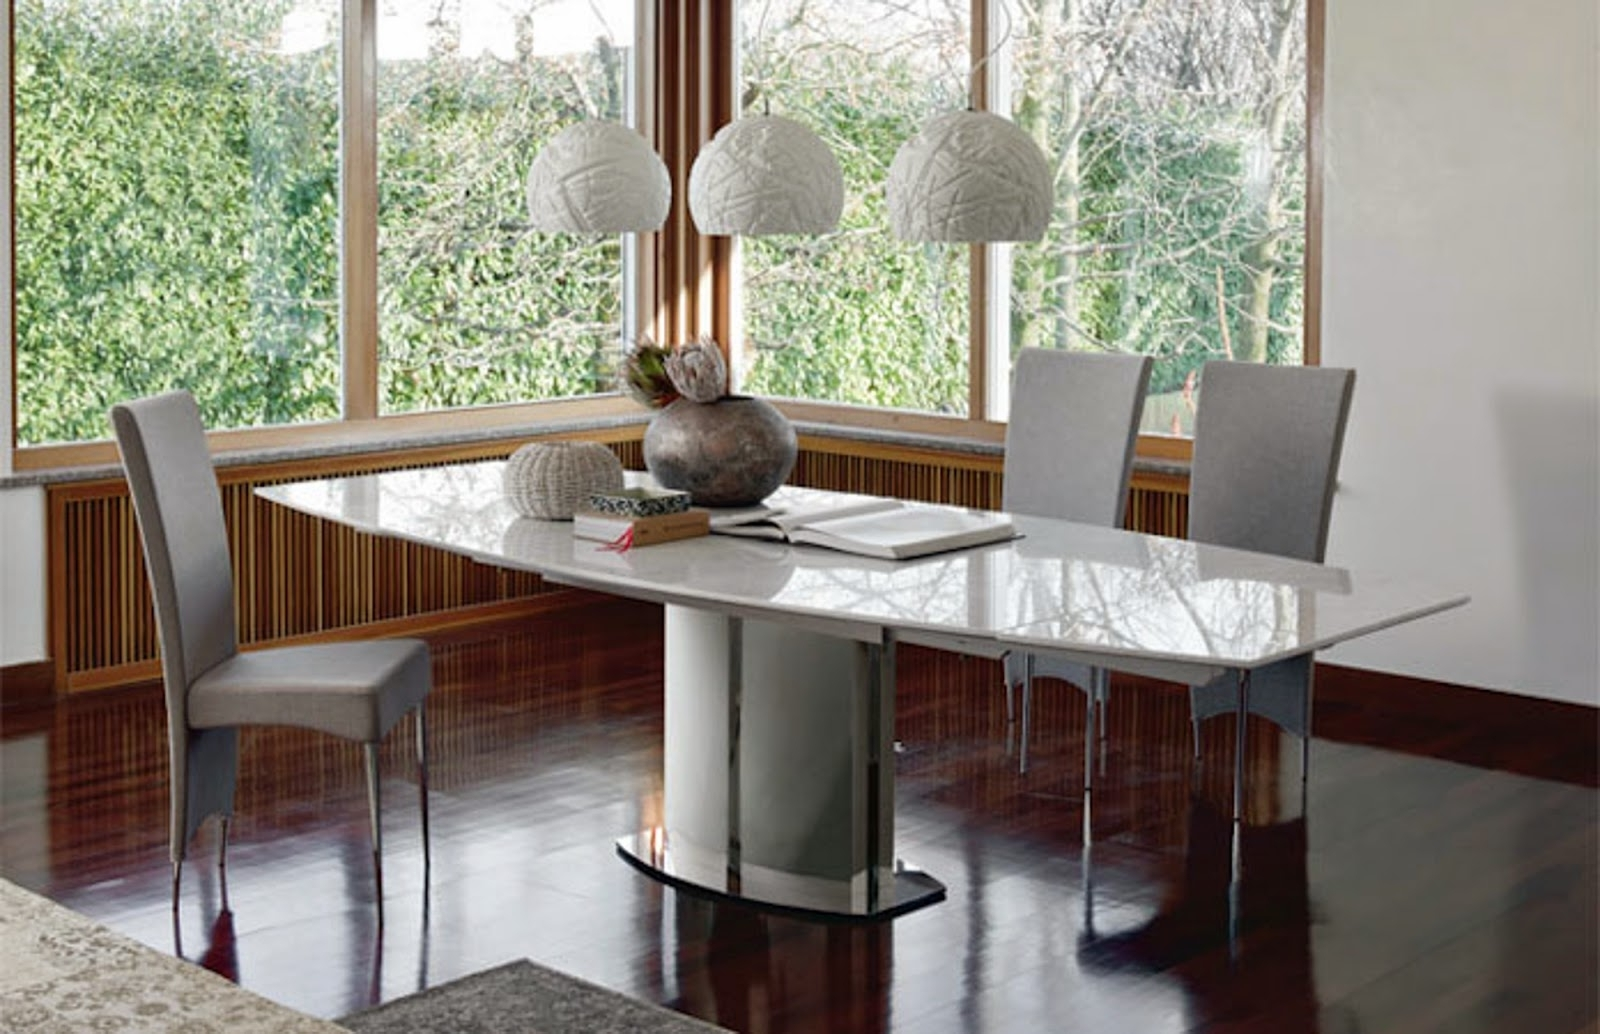 Extending Marble Dining Tables within Latest Extending Table - Rodeo Drive Marble - Cattelan Italia - Italian